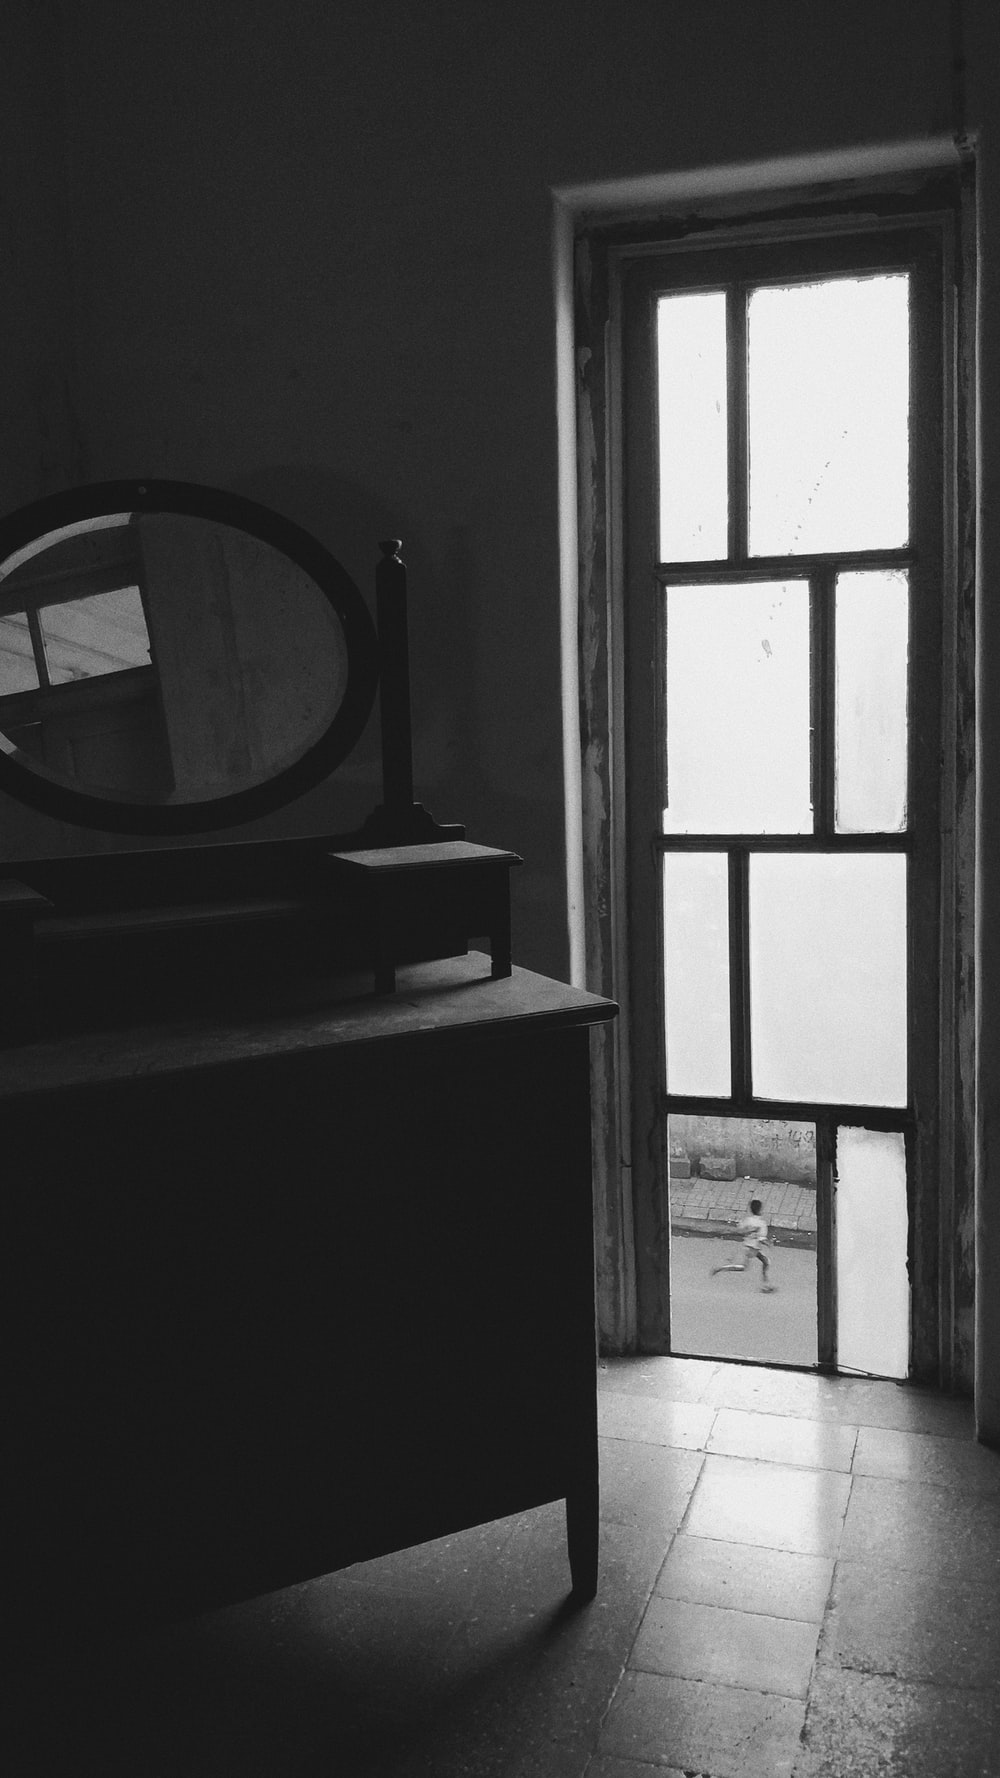 grayscale photo of dresser with mirror